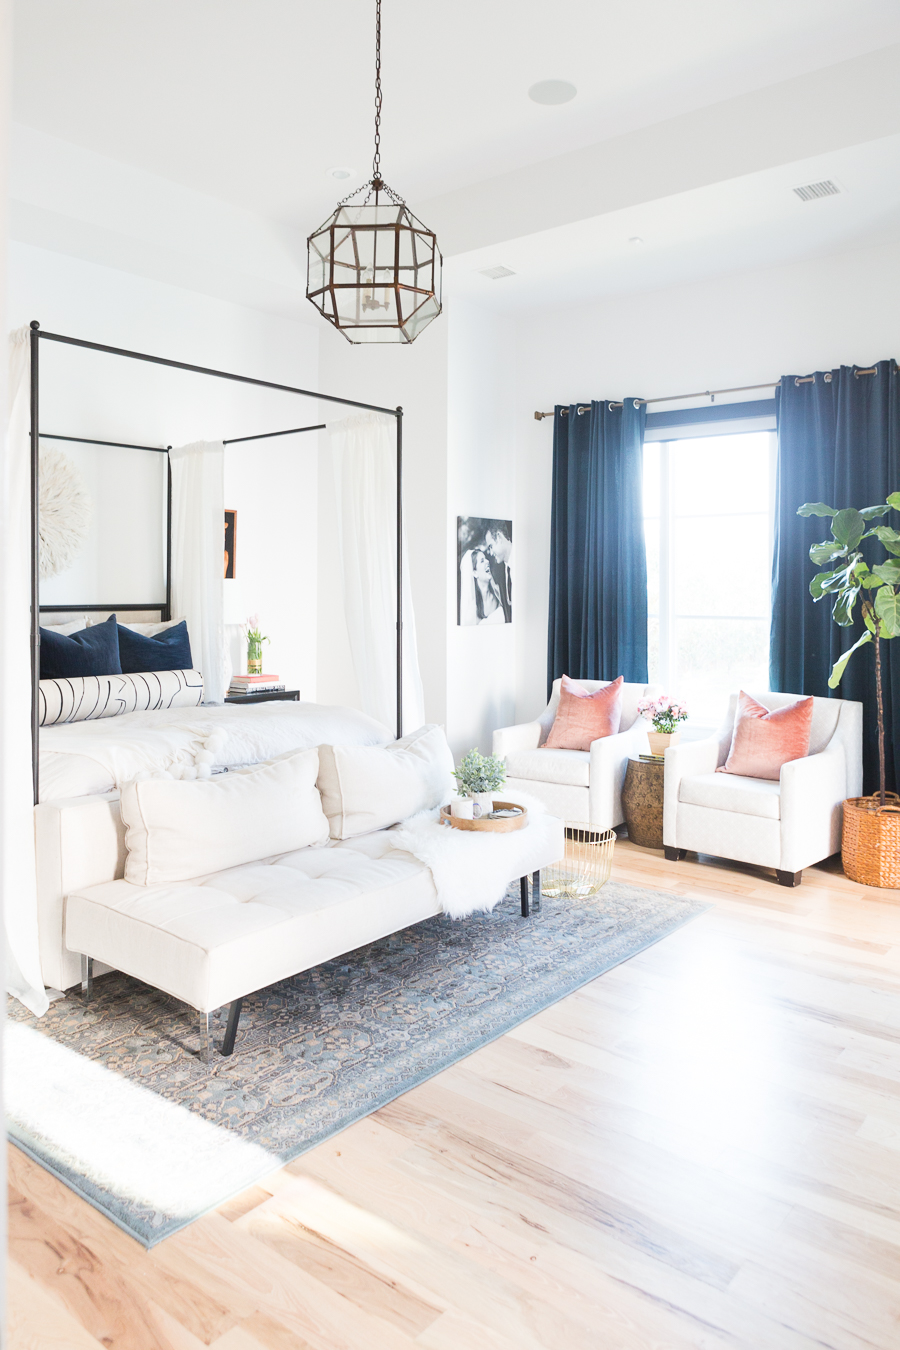 The Ultimate Guide to Affordable Canopy Beds master bedroom end of bed sofa navy and black master bedroom decor black wood master bedroom night stands gallery art master bedroom black gallery frames master bedroom fiddle leaf fig tree master bedroom juju hat over bed pink faux stems